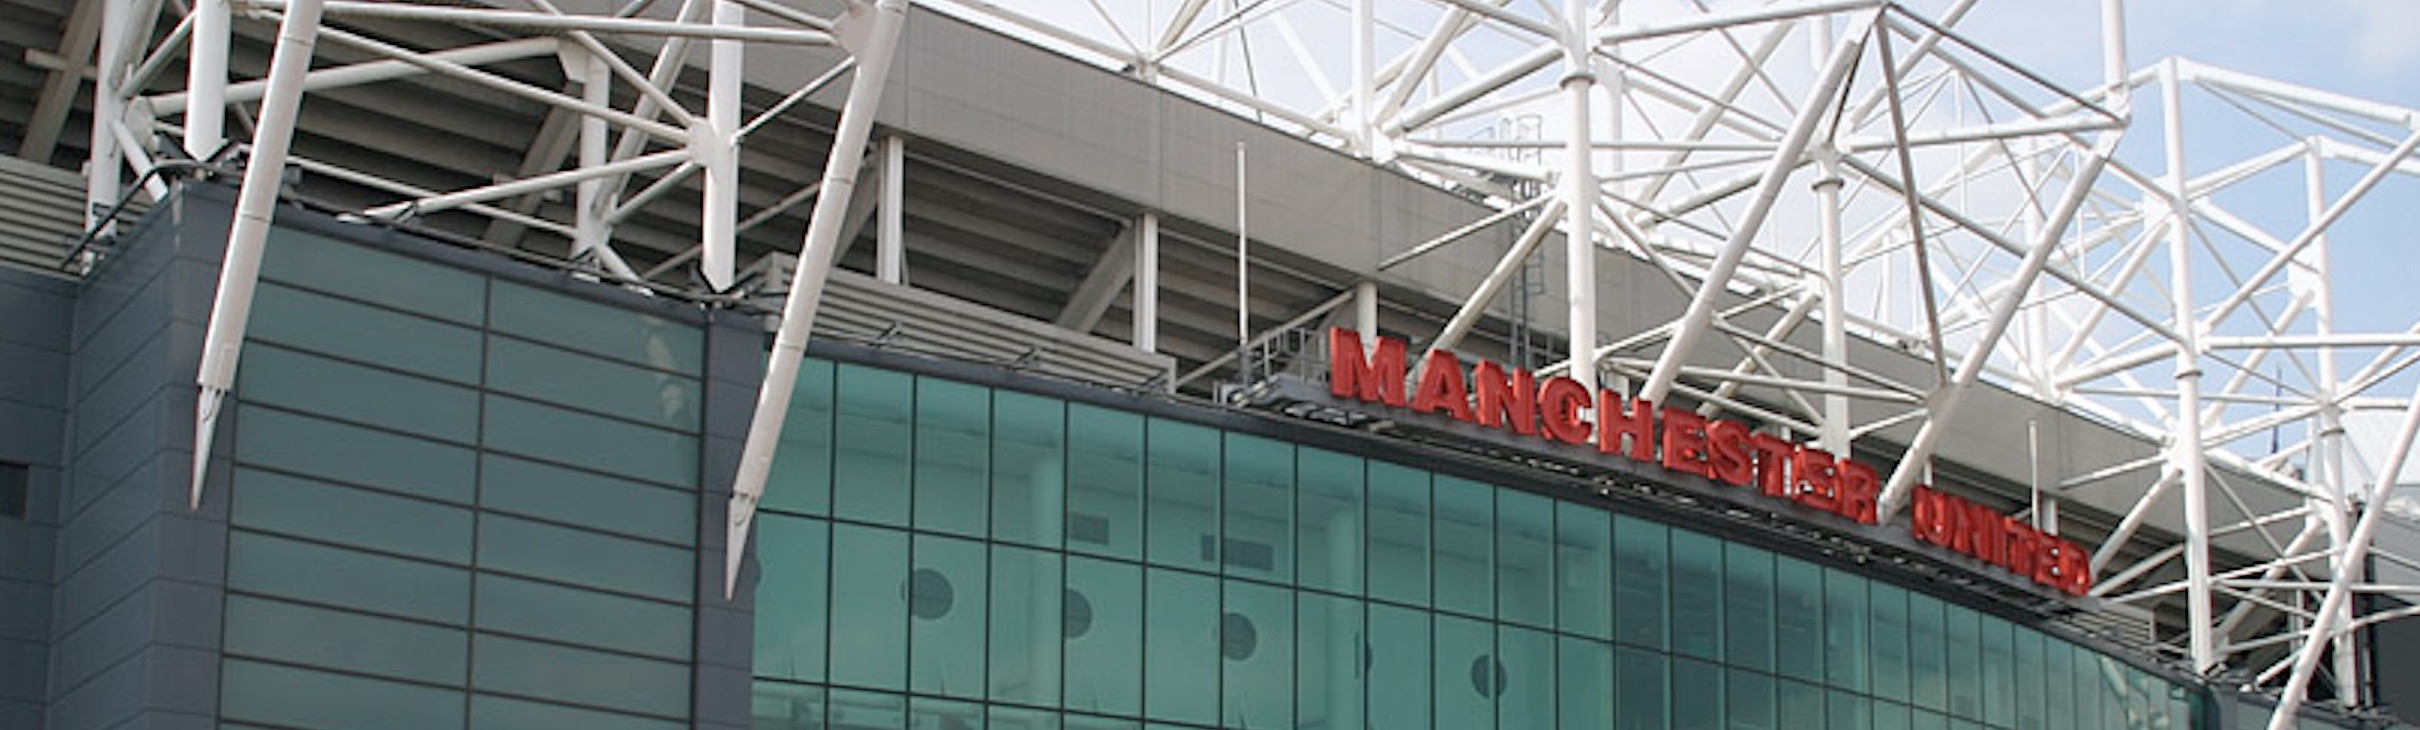 Man United V Everton - Coach/Ferry & Hotel